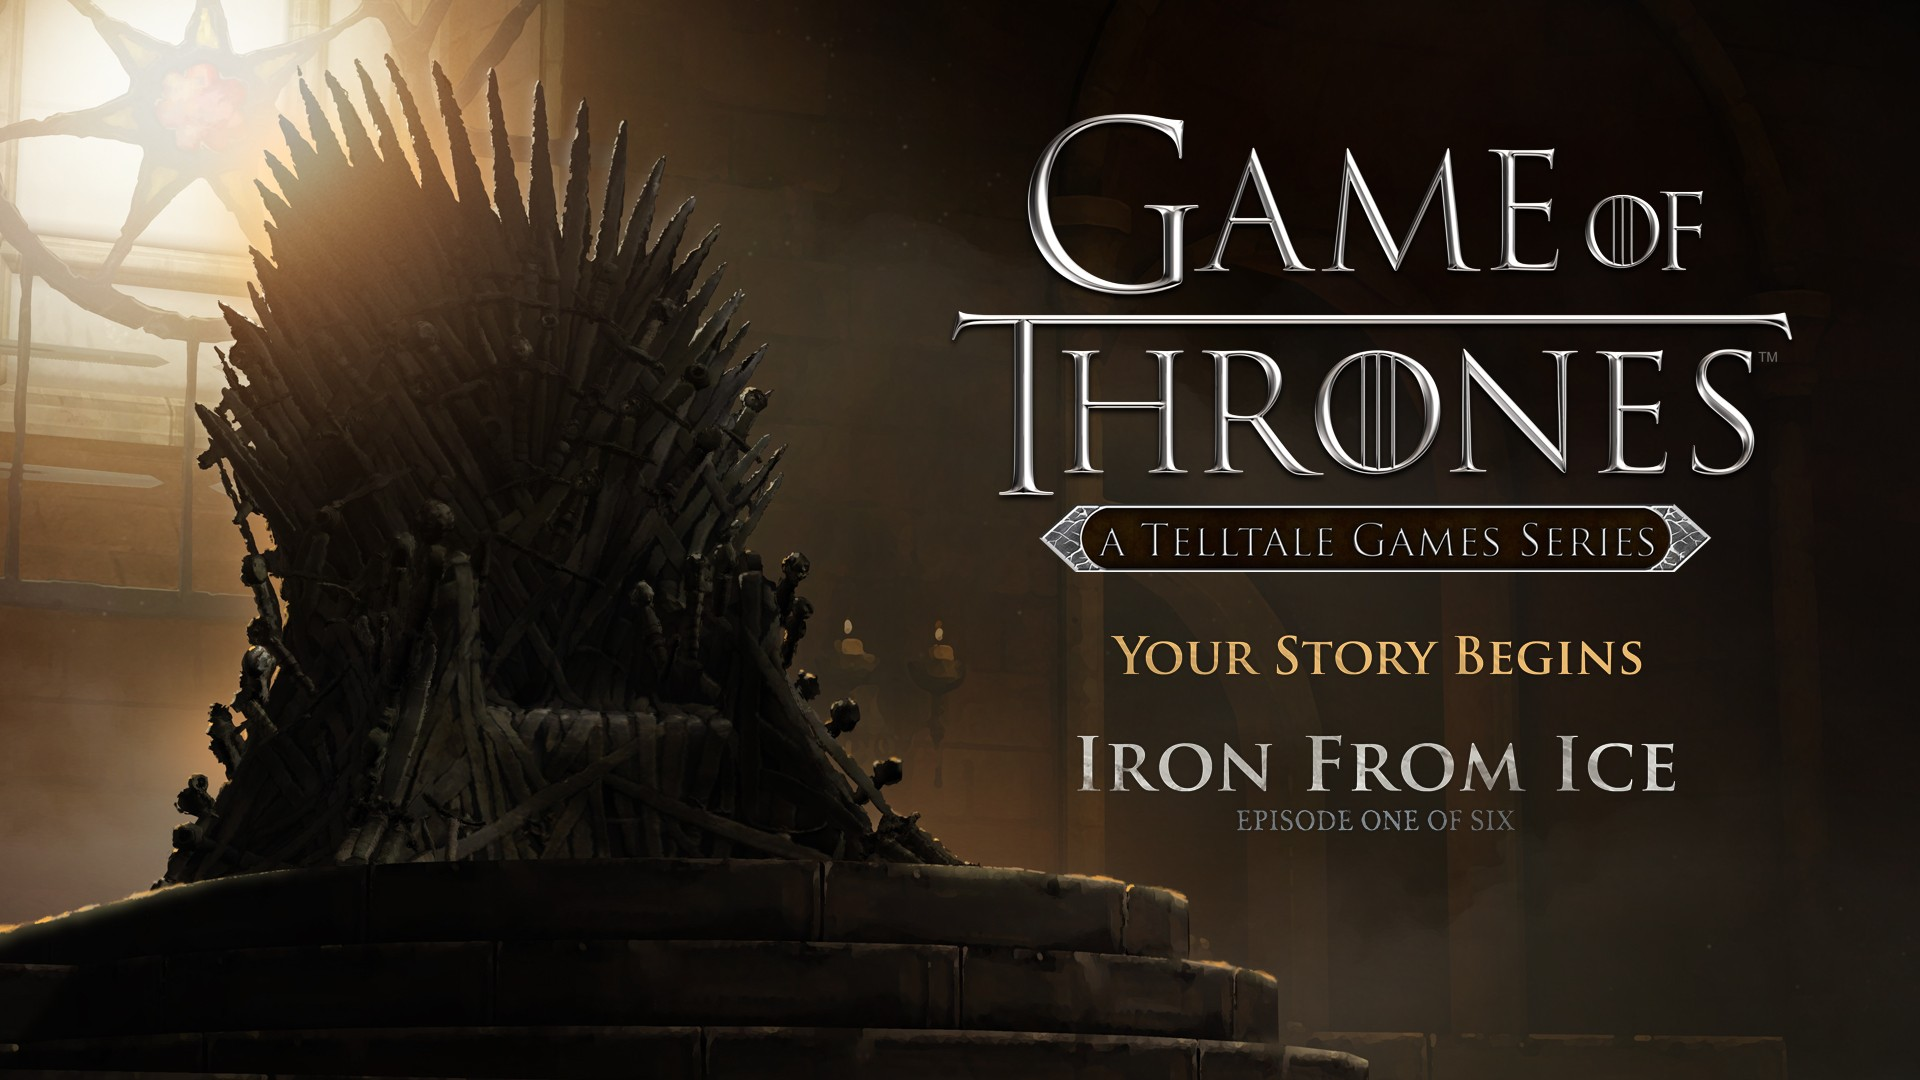 دانلود ترینر بازی GAME OF THRONES: EPISODE 1 - IRON FROM ICE